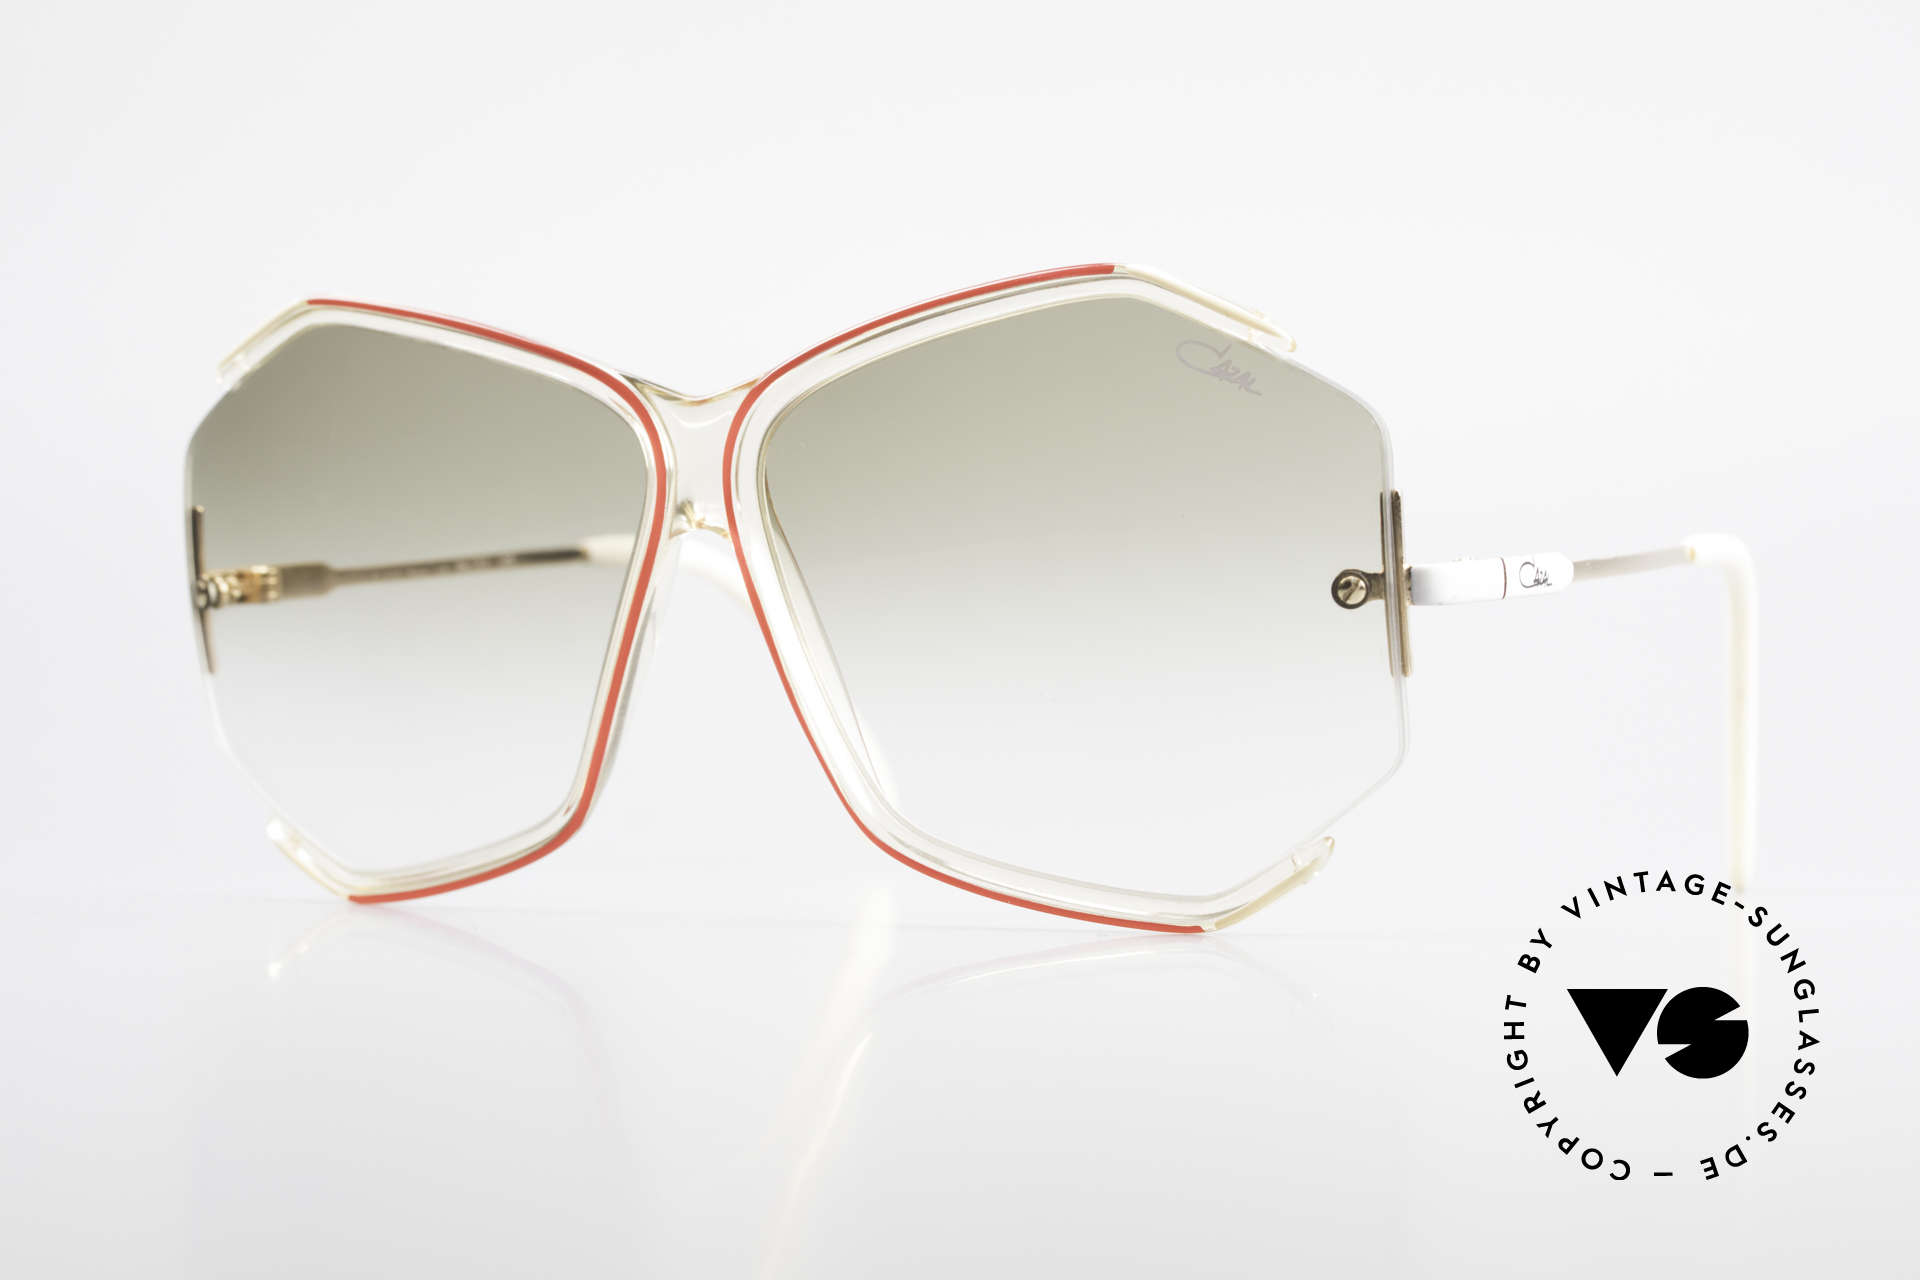 Cazal 852 Vintage 80's Sunglasses XXL, fancy Cazal 'oversized sunglasses ' from the eighties, Made for Women